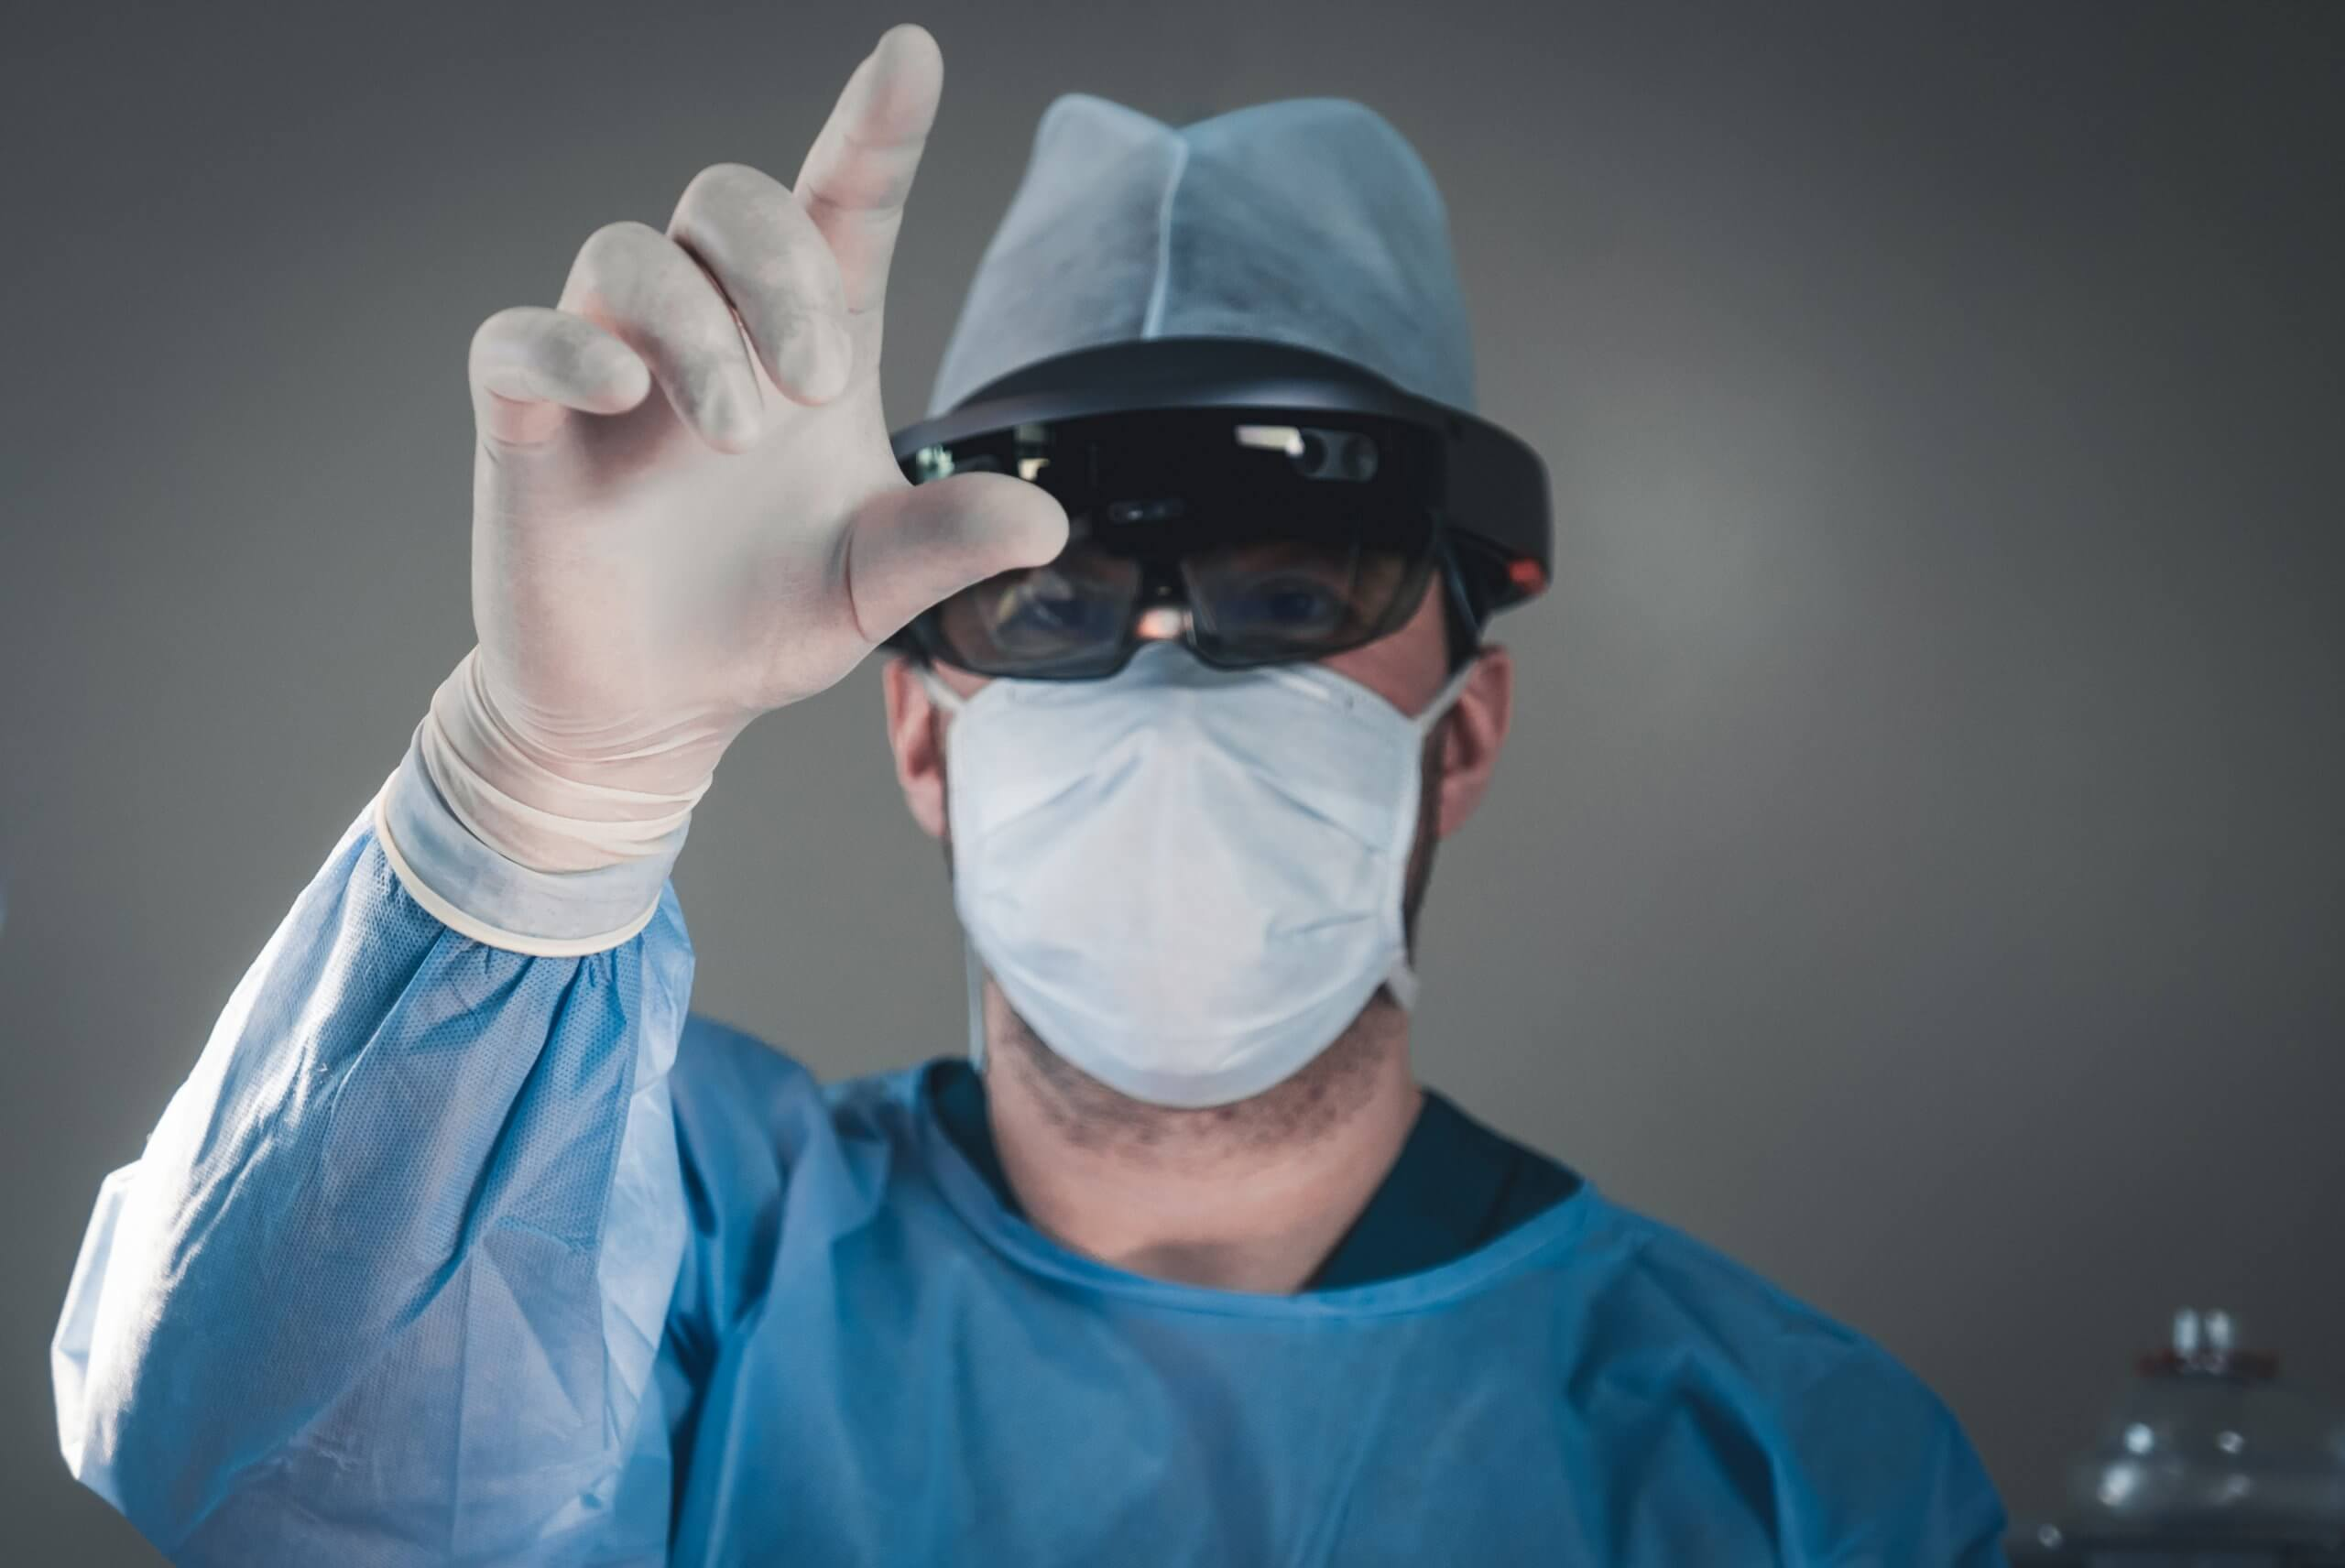 Doctors in London hospitals are using Hololens mixed reality headsets